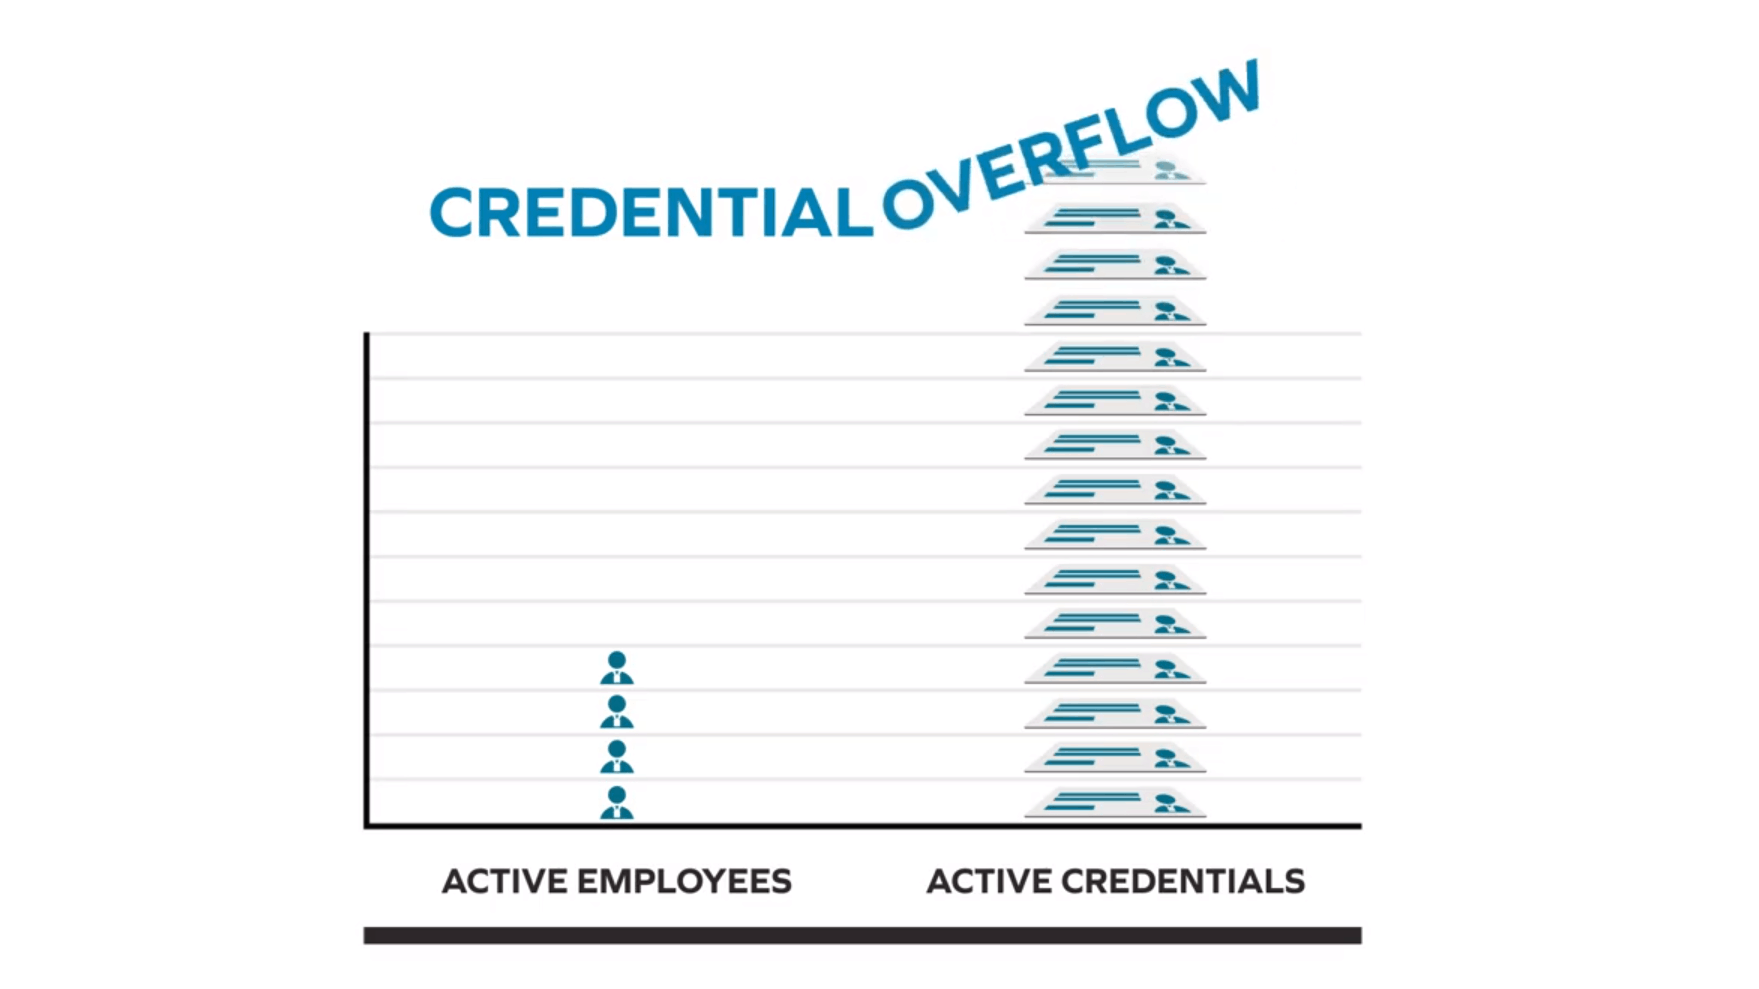 BadgePass Credential Overflow graphic